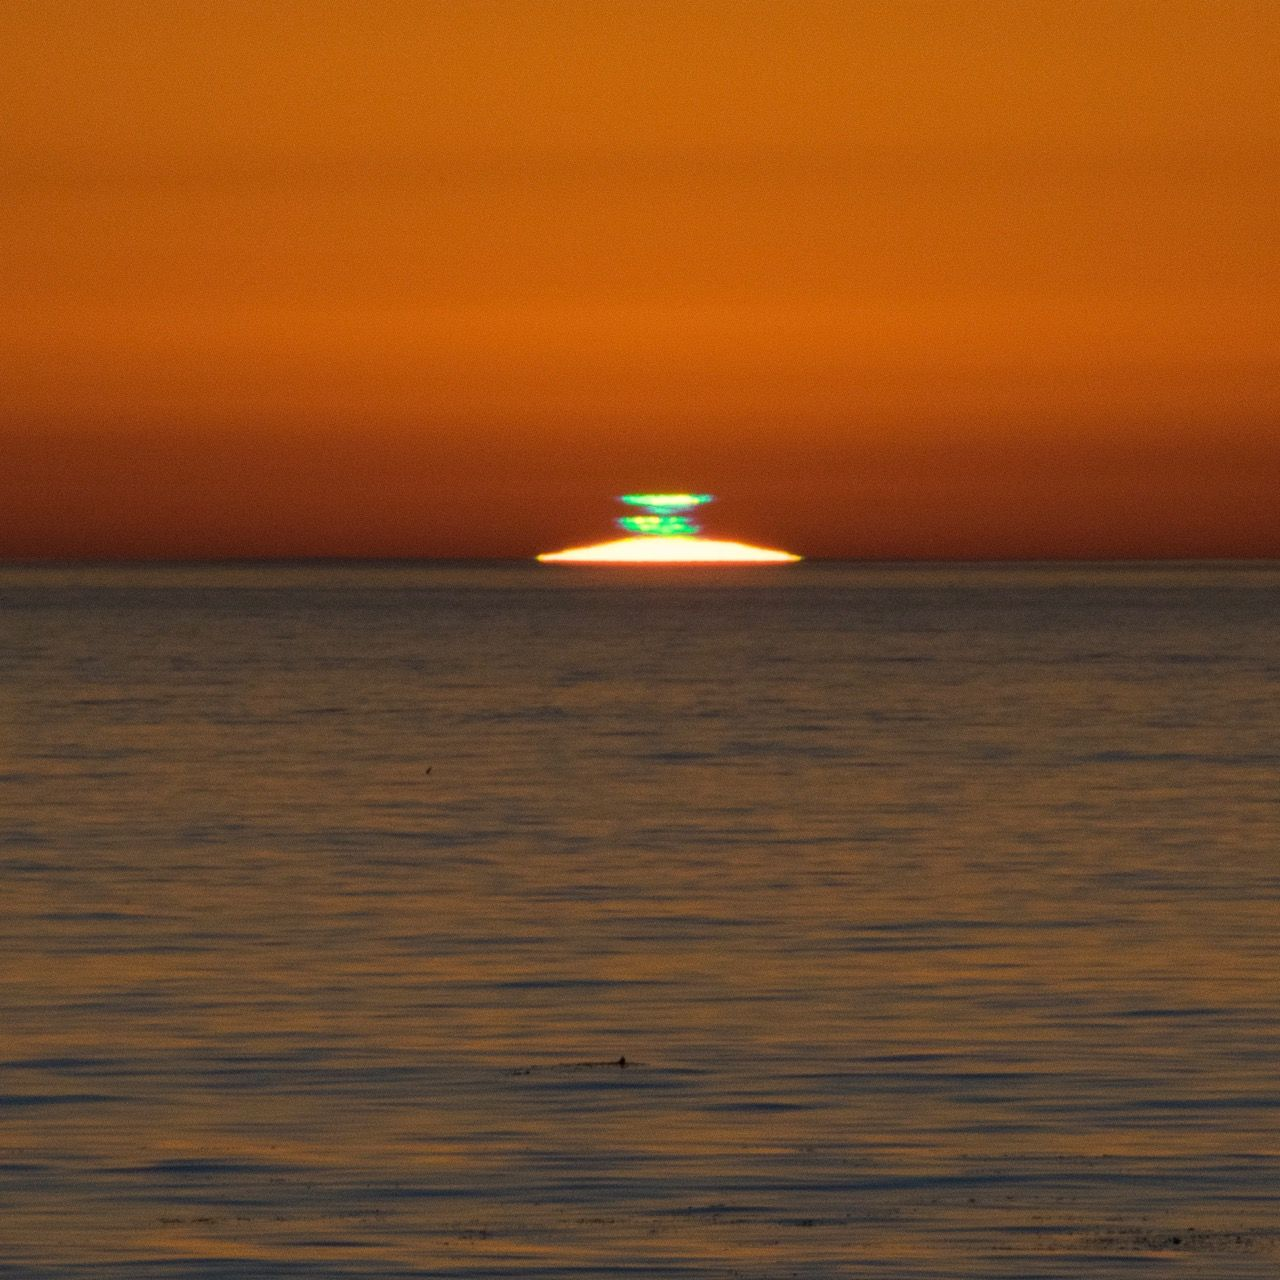 double green flash earthsky 12 19 17 green flashes are best seen over ocean horizons like this. Black Bedroom Furniture Sets. Home Design Ideas